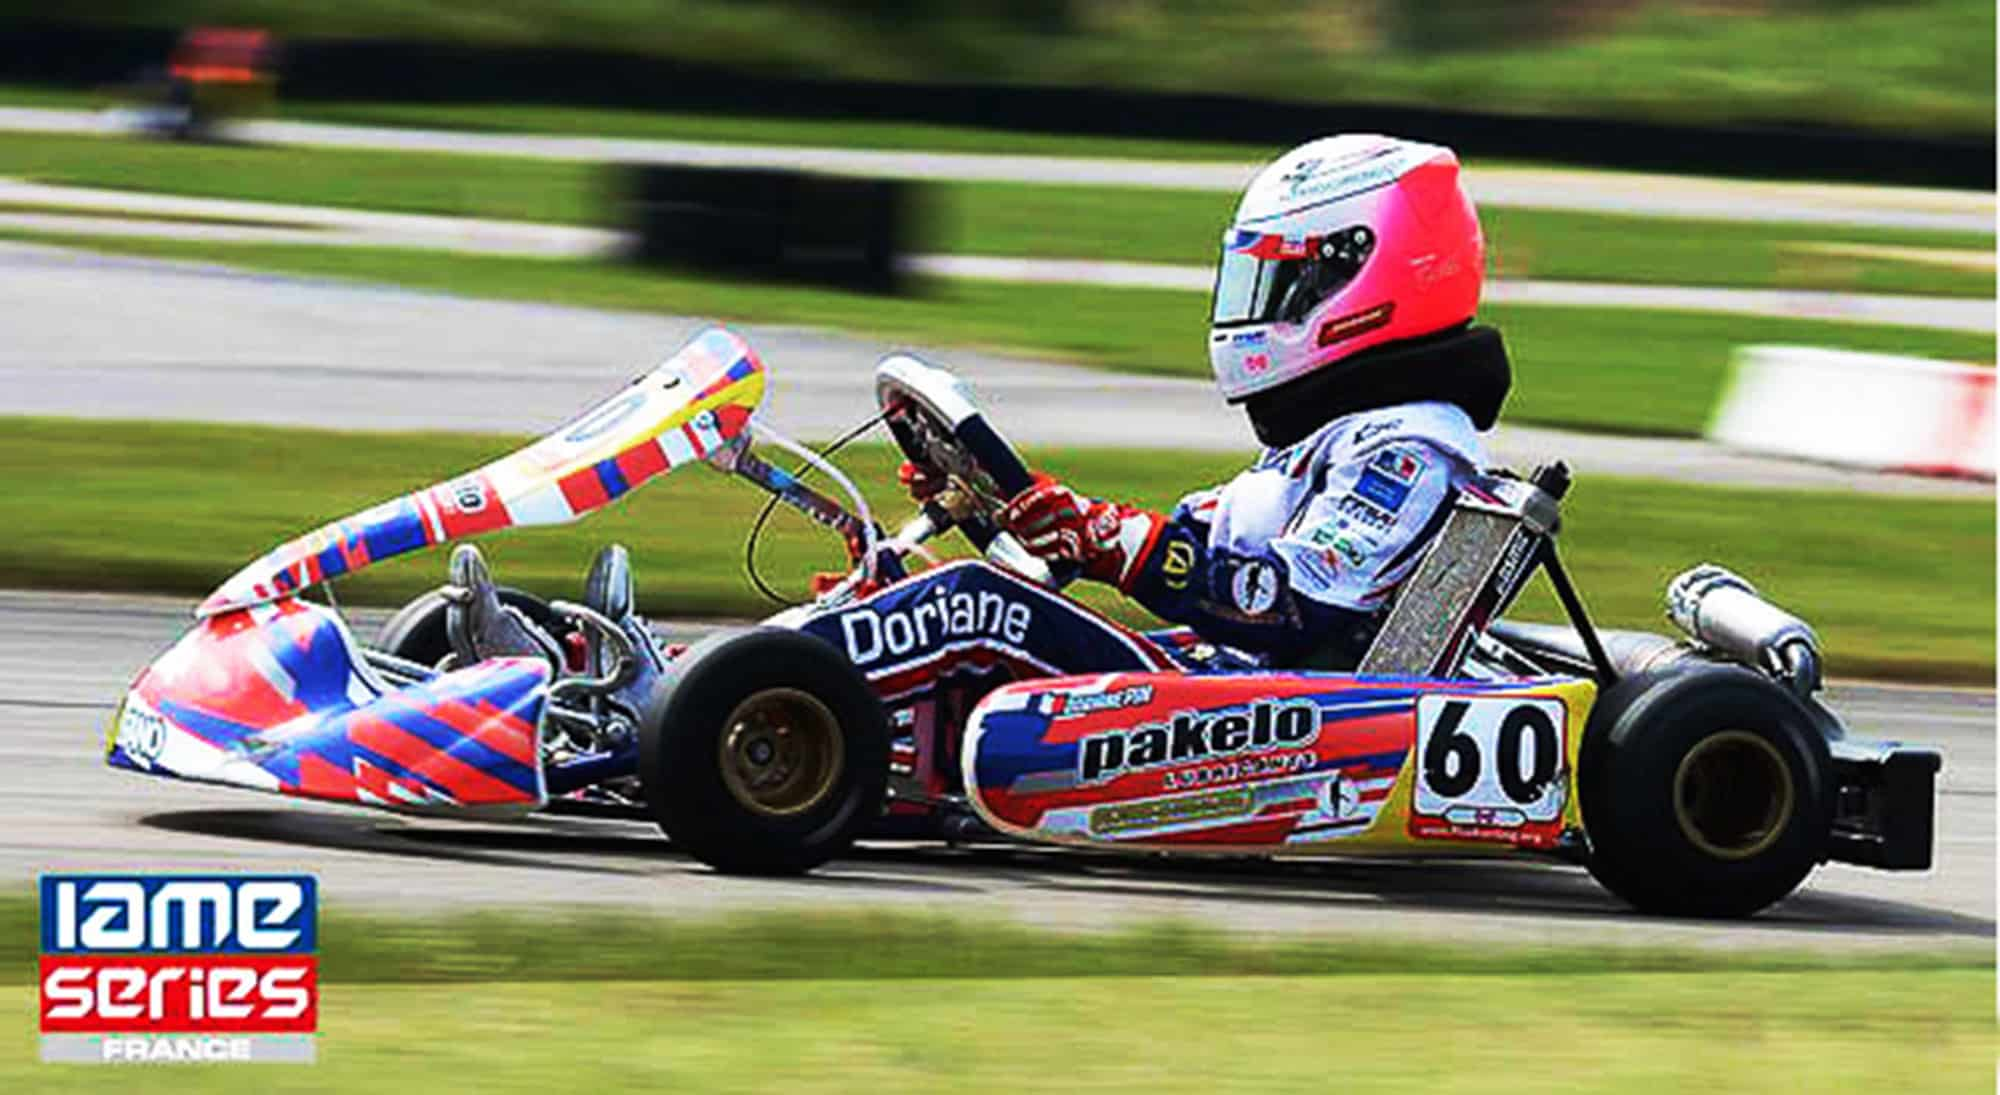 New category for Doriane Pin in IAME X30 Junior